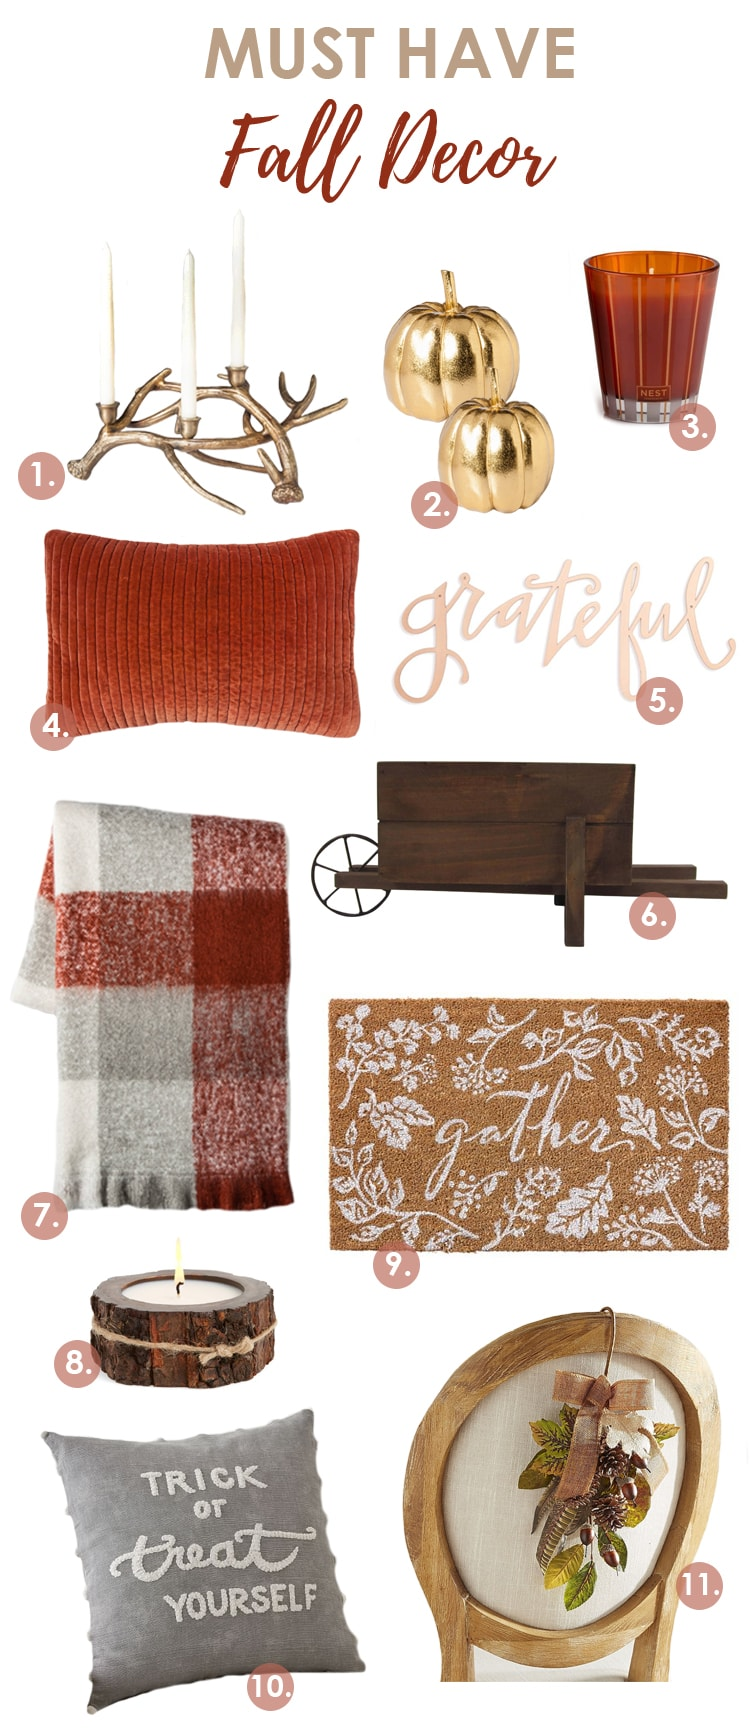 11 of THE Best must have fall decor this year! #falldecor #falldecorating #fallideas